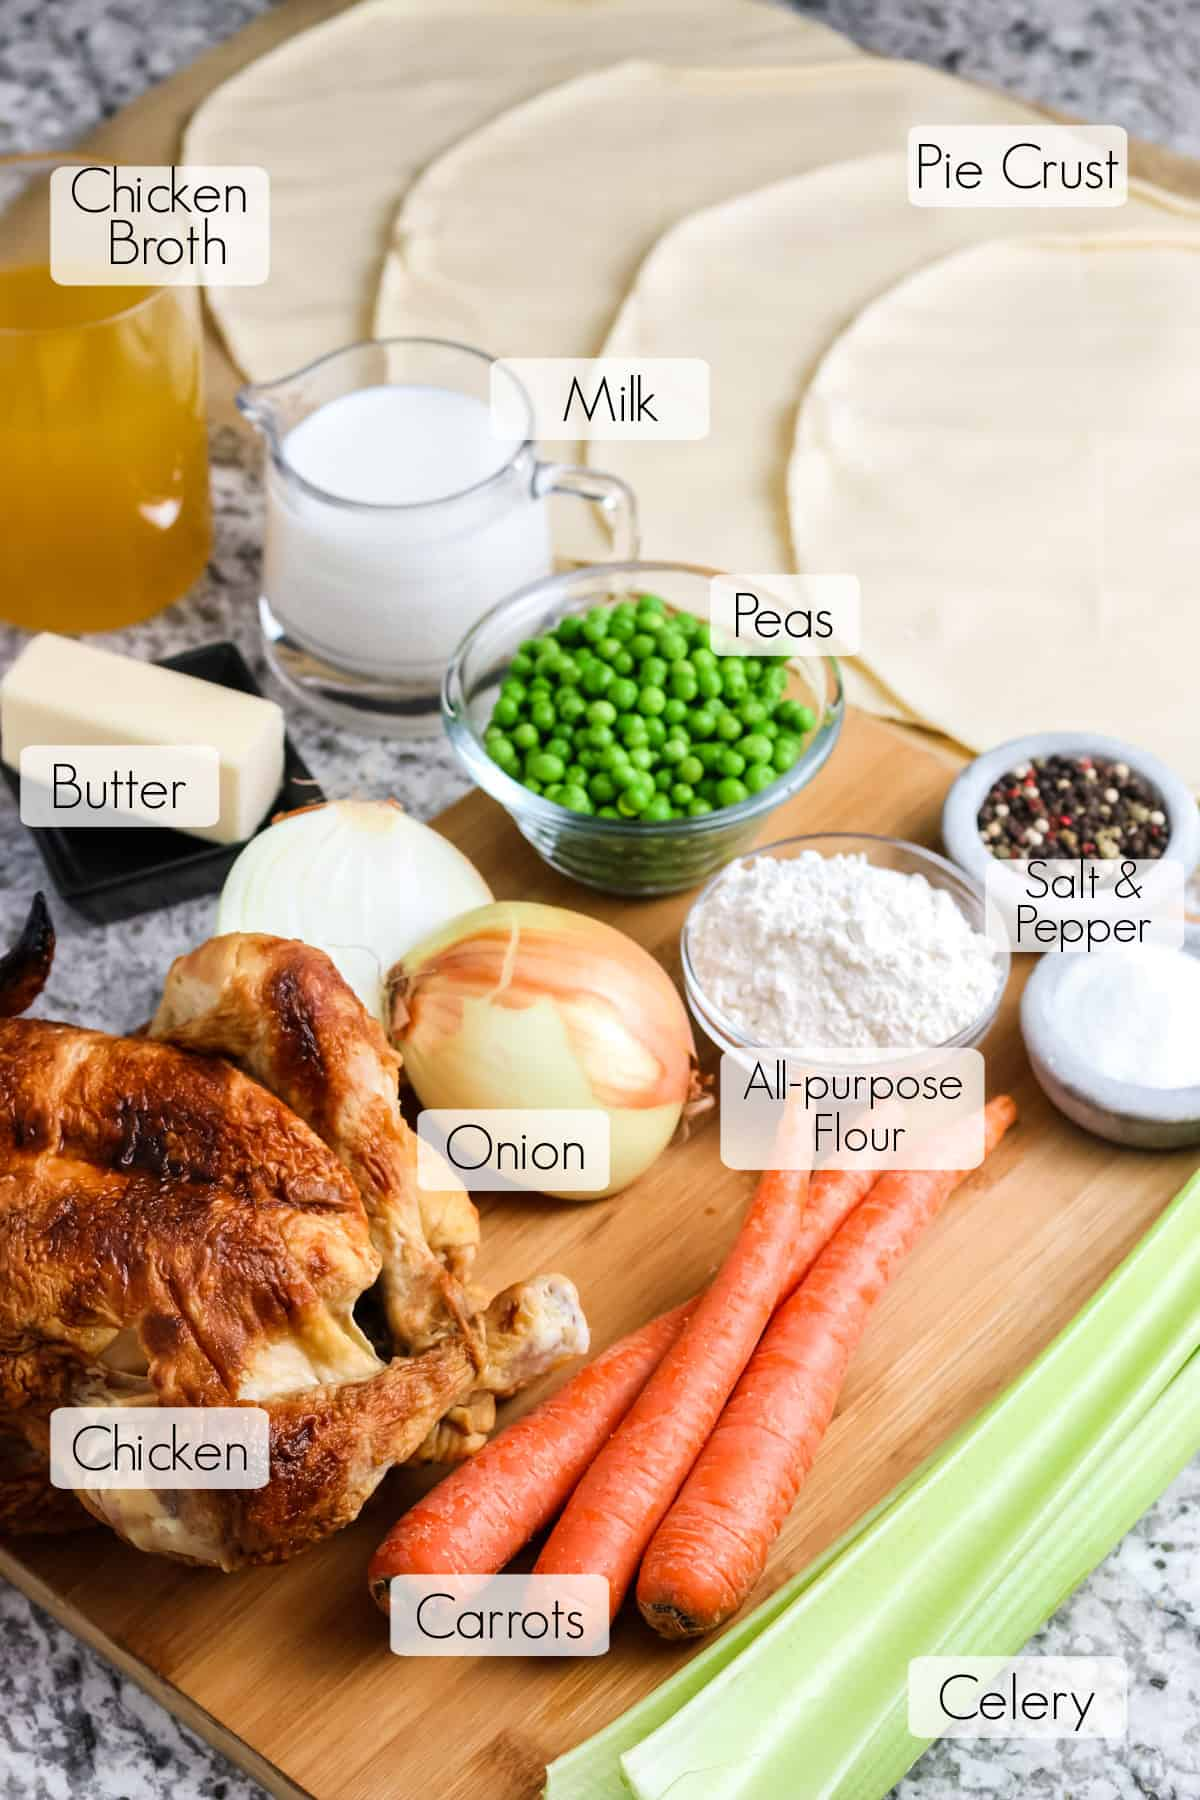 Labeled ingredients needed to make homemade chicken pot pie.